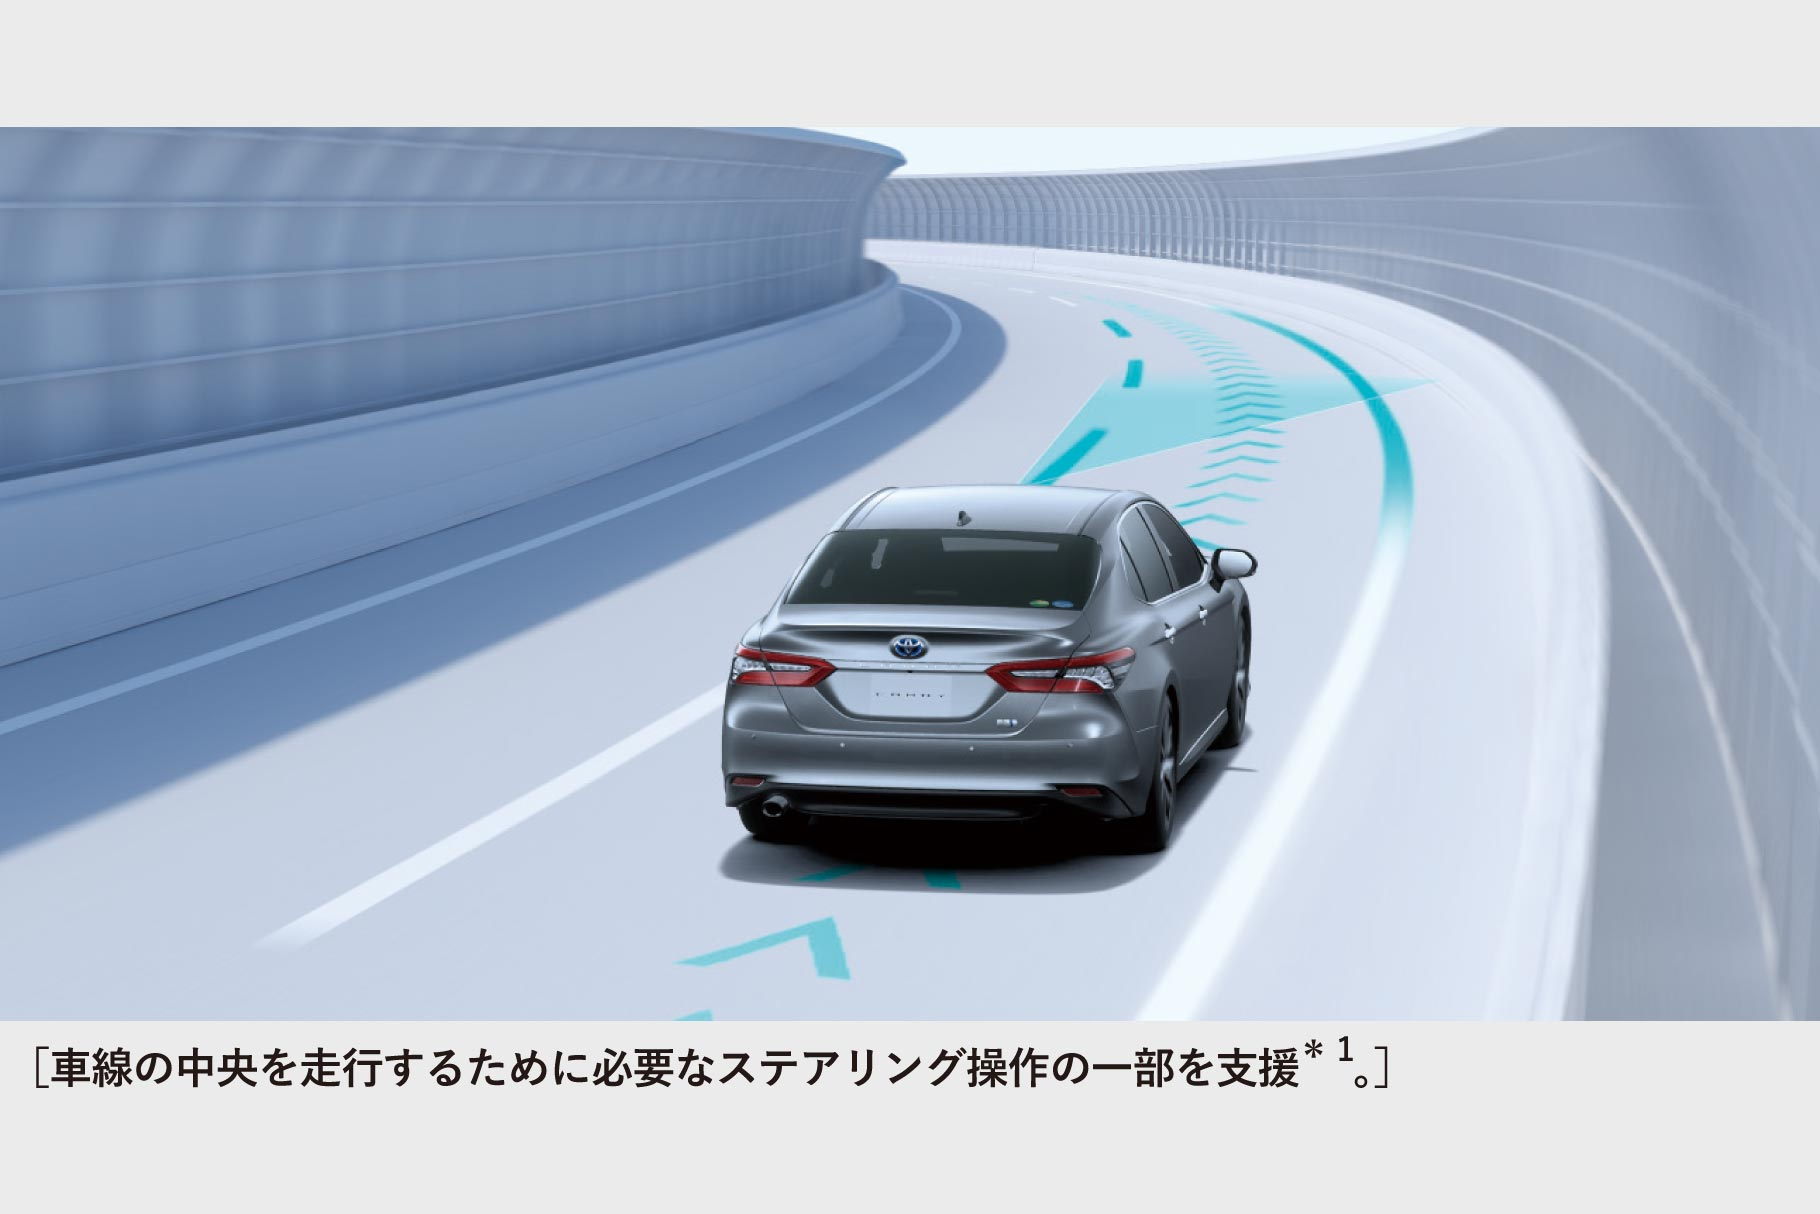 camry_safety_img10